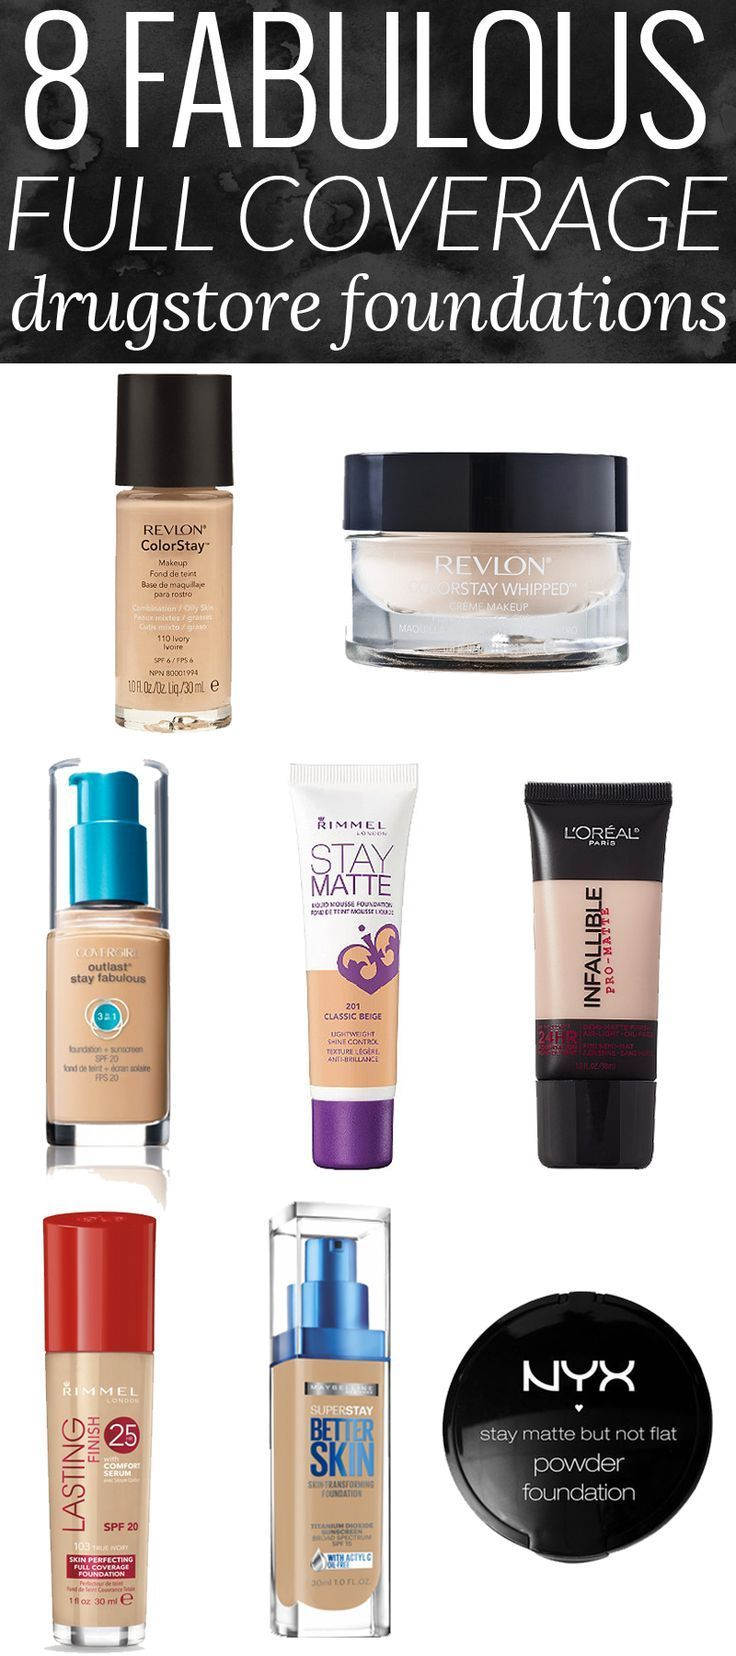 8 Fabulous Full Coverage Drugstore Foundations – these are some of my absolute favorite full coverage foundations, period!